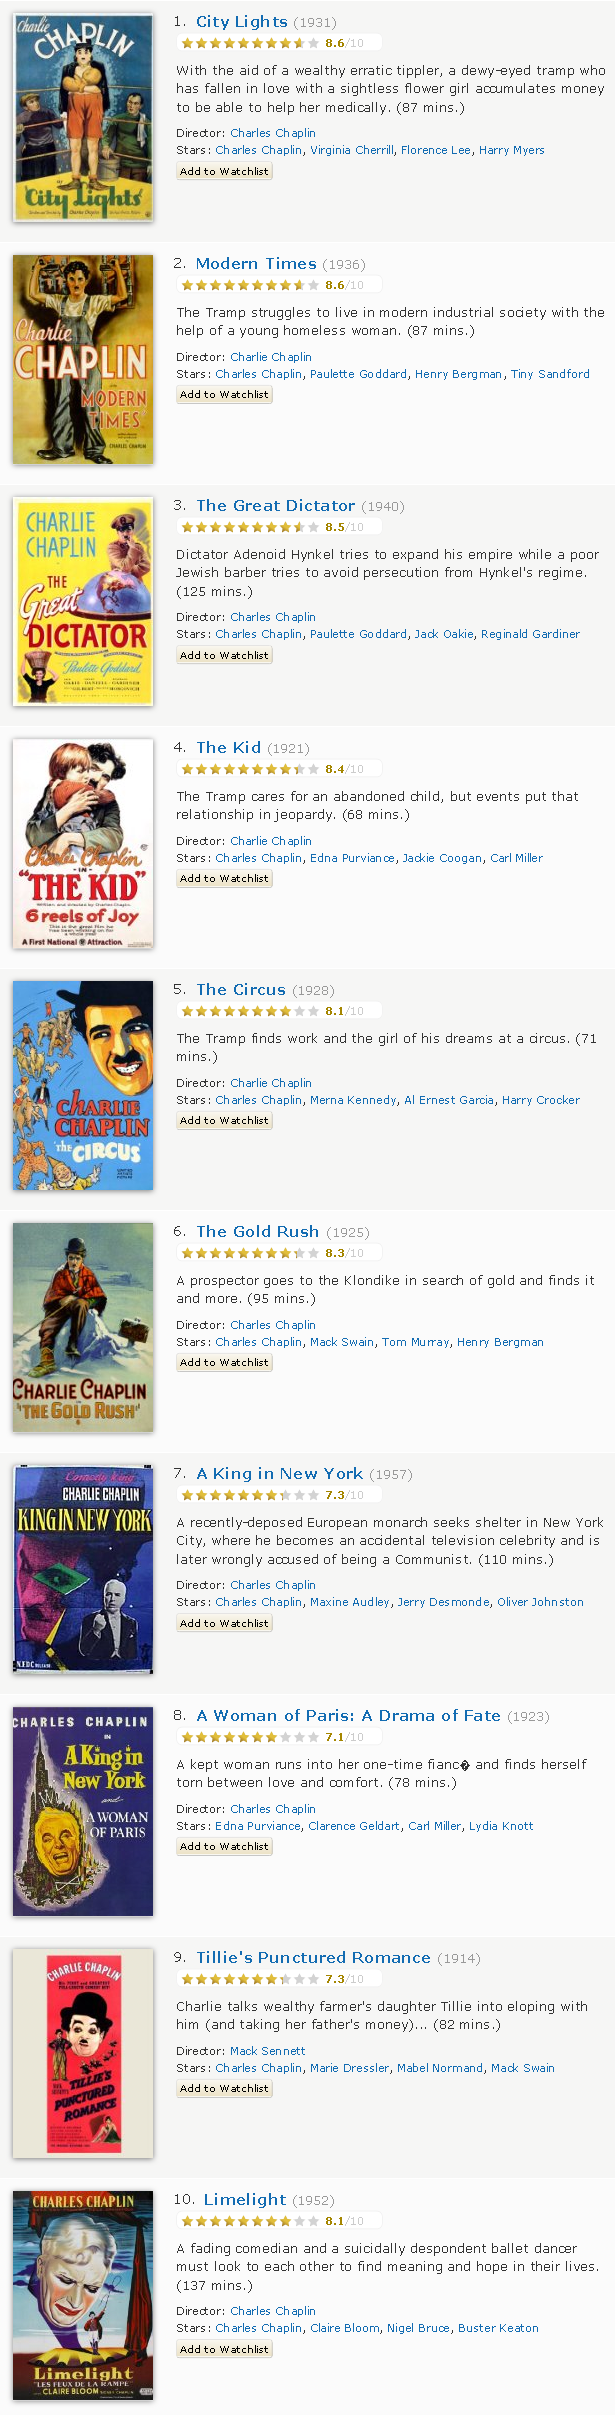 Charlie Chaplin's Top 10 Films as rated by IMDB